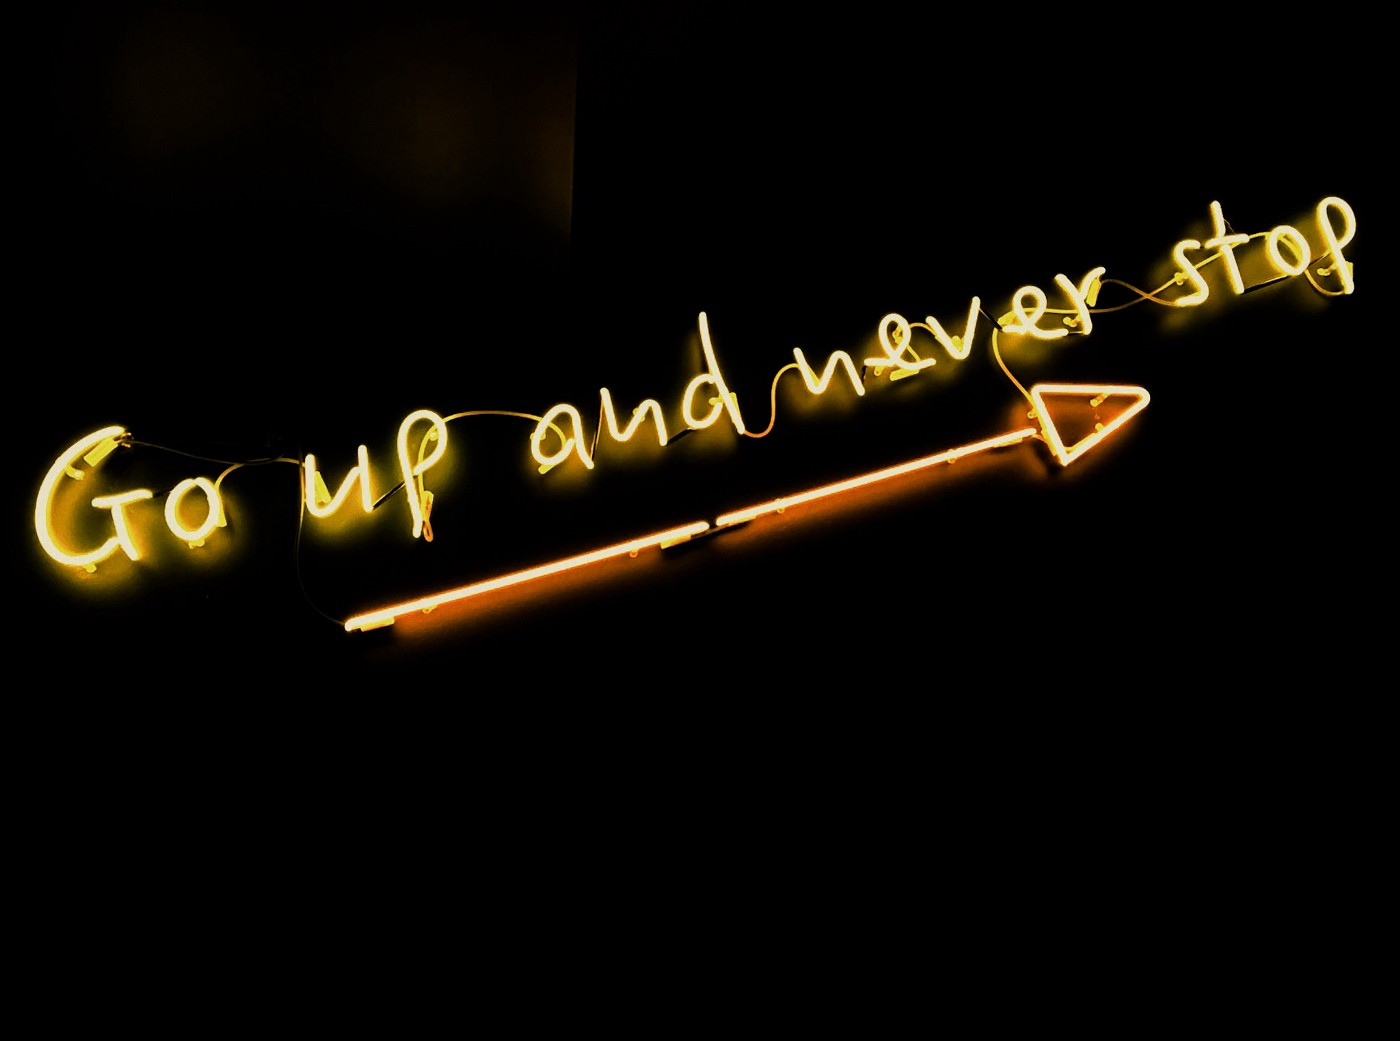 """Neon sign says """"go up and never stop""""."""